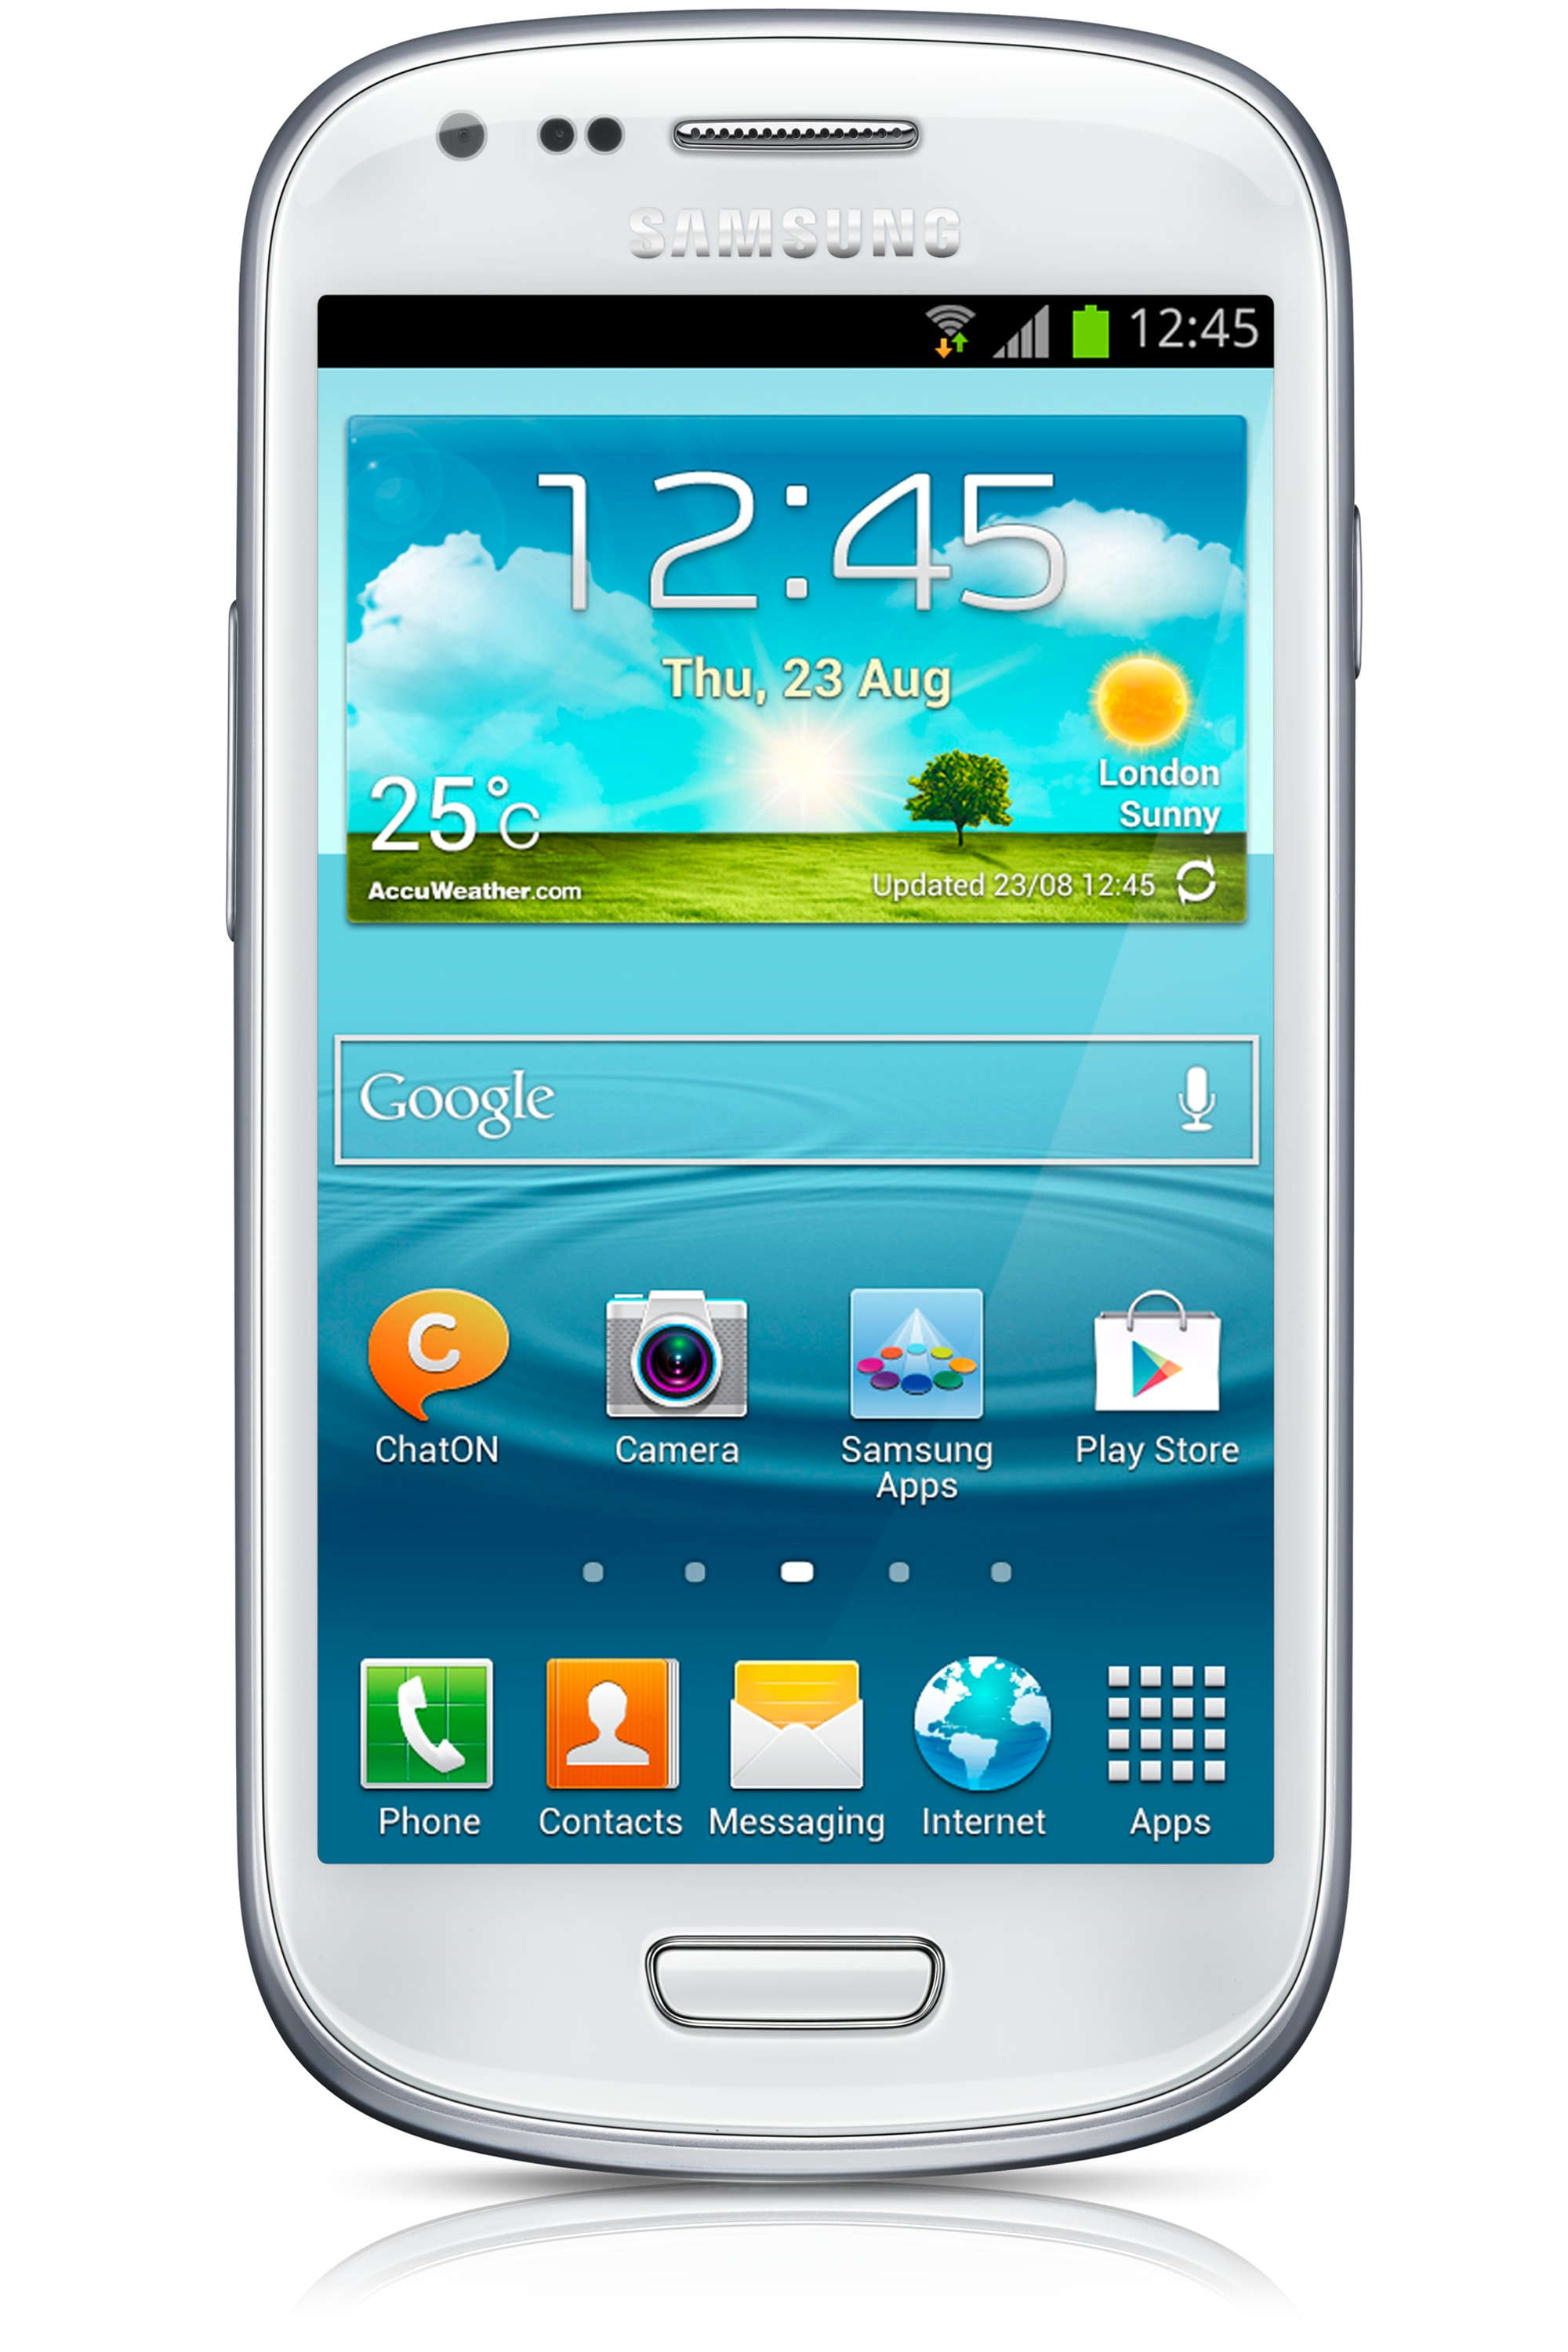 http://images.samsung.com/is/image/samsung/uk_GT-I8190RWABTU_009_Front_white?$Download-Source$